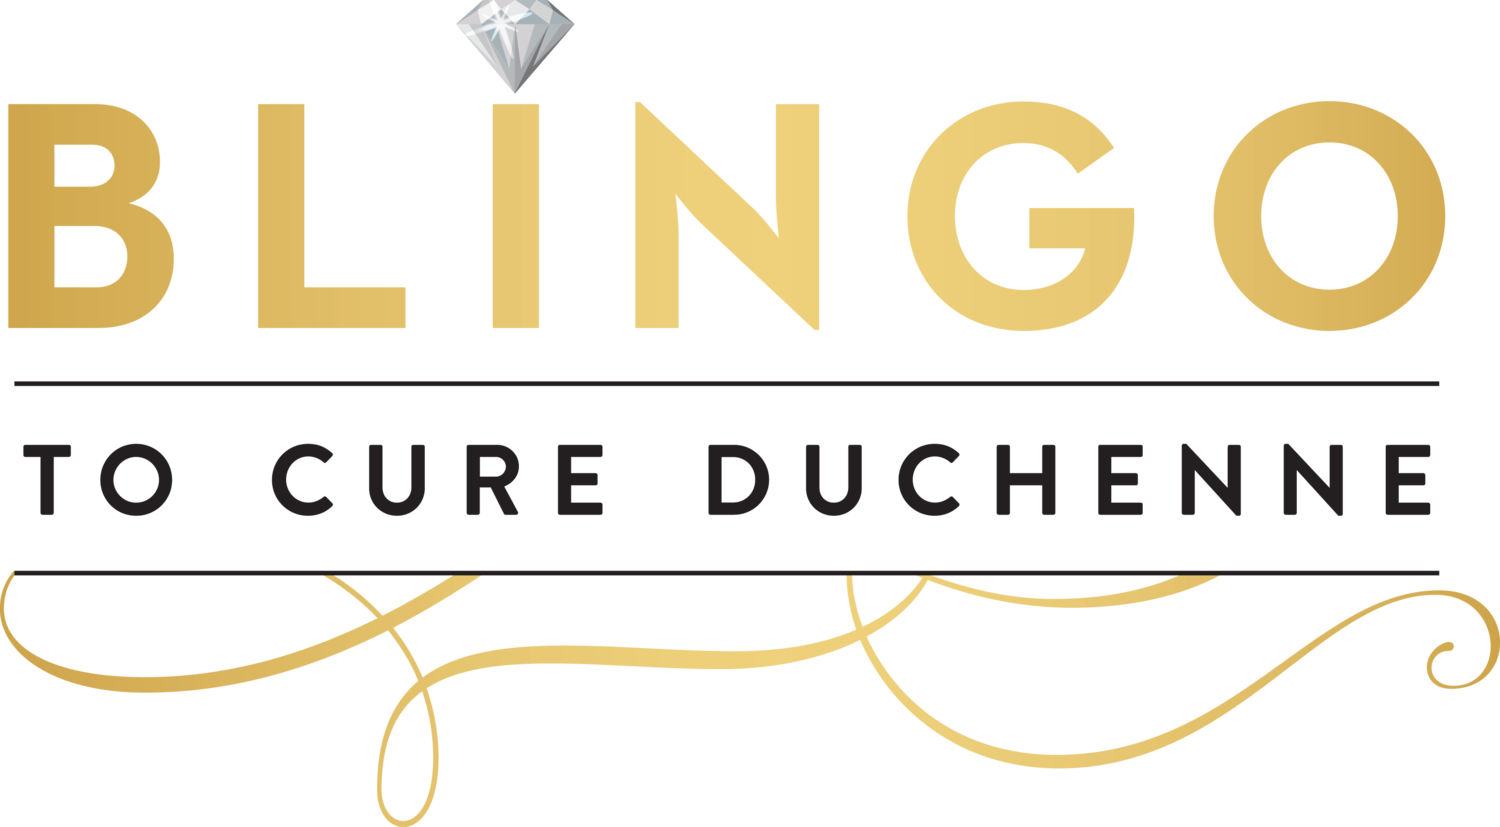 Blingo to Cure Duchenne Muscular Dystrophy